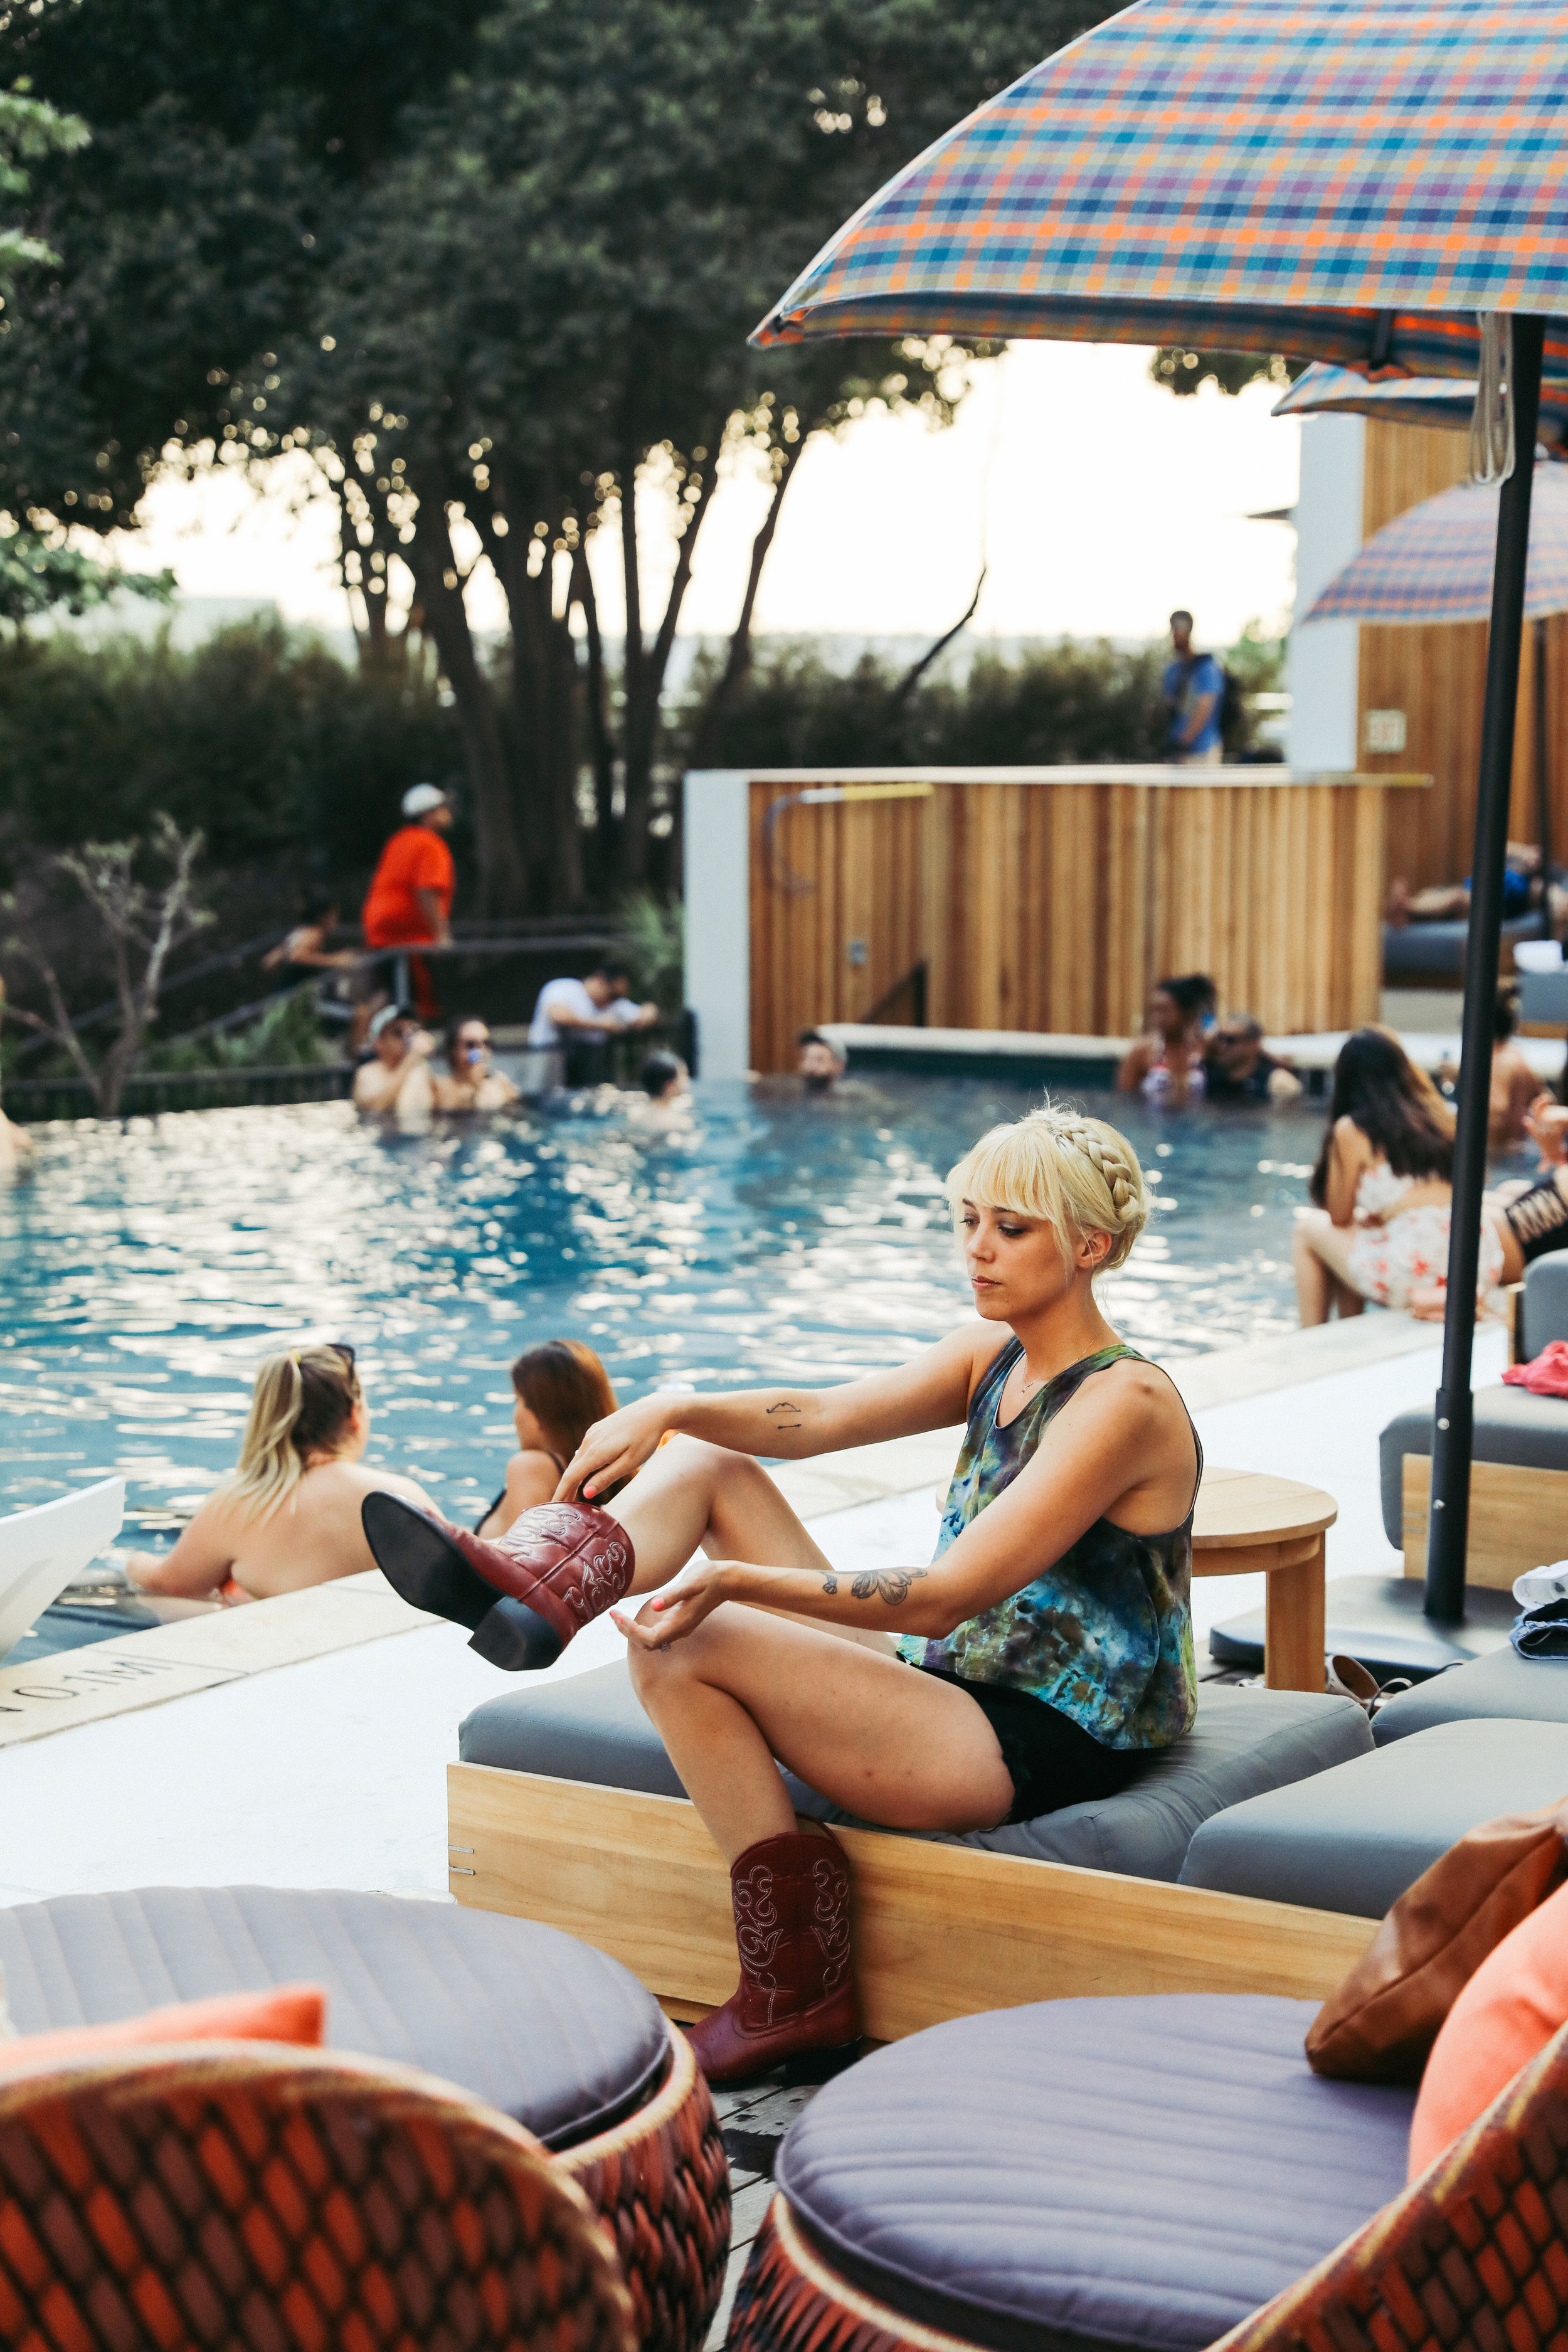 LINE_poolparty_D__51.jpg